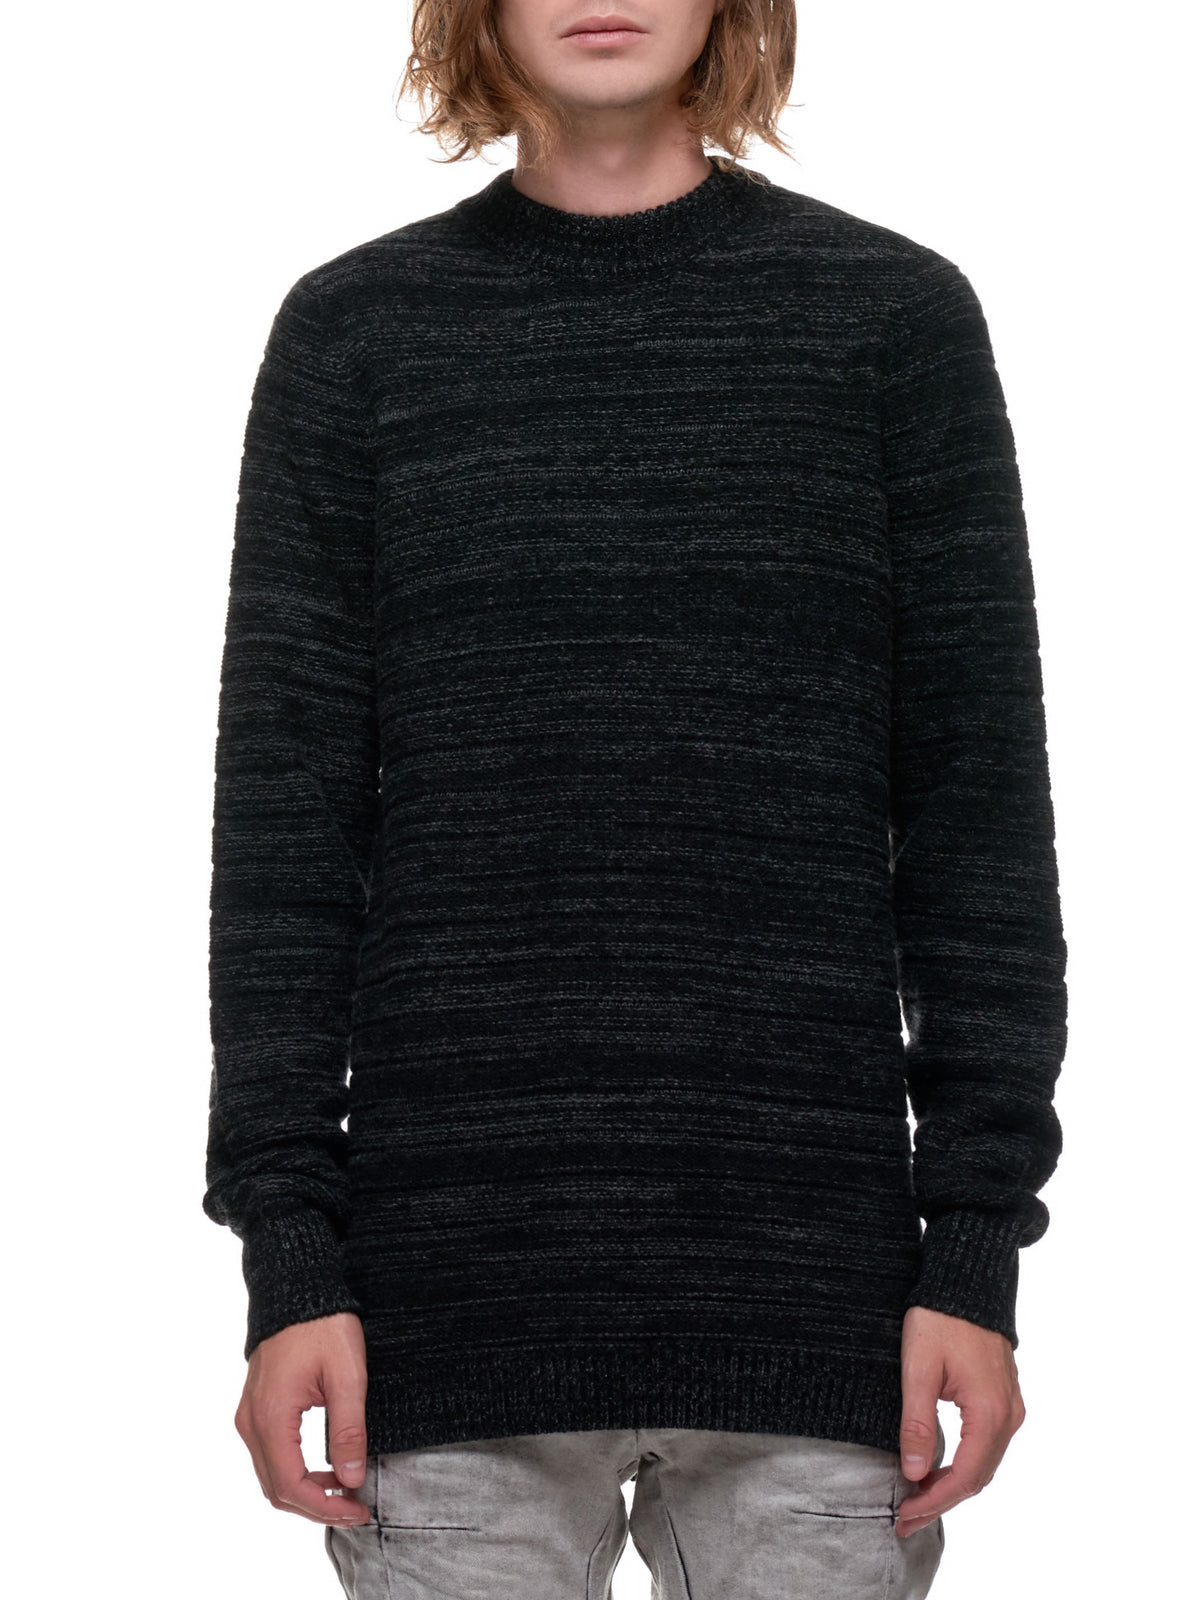 3D Seamless Striped Sweater (KN5-FPI30004-DARK-GREY)